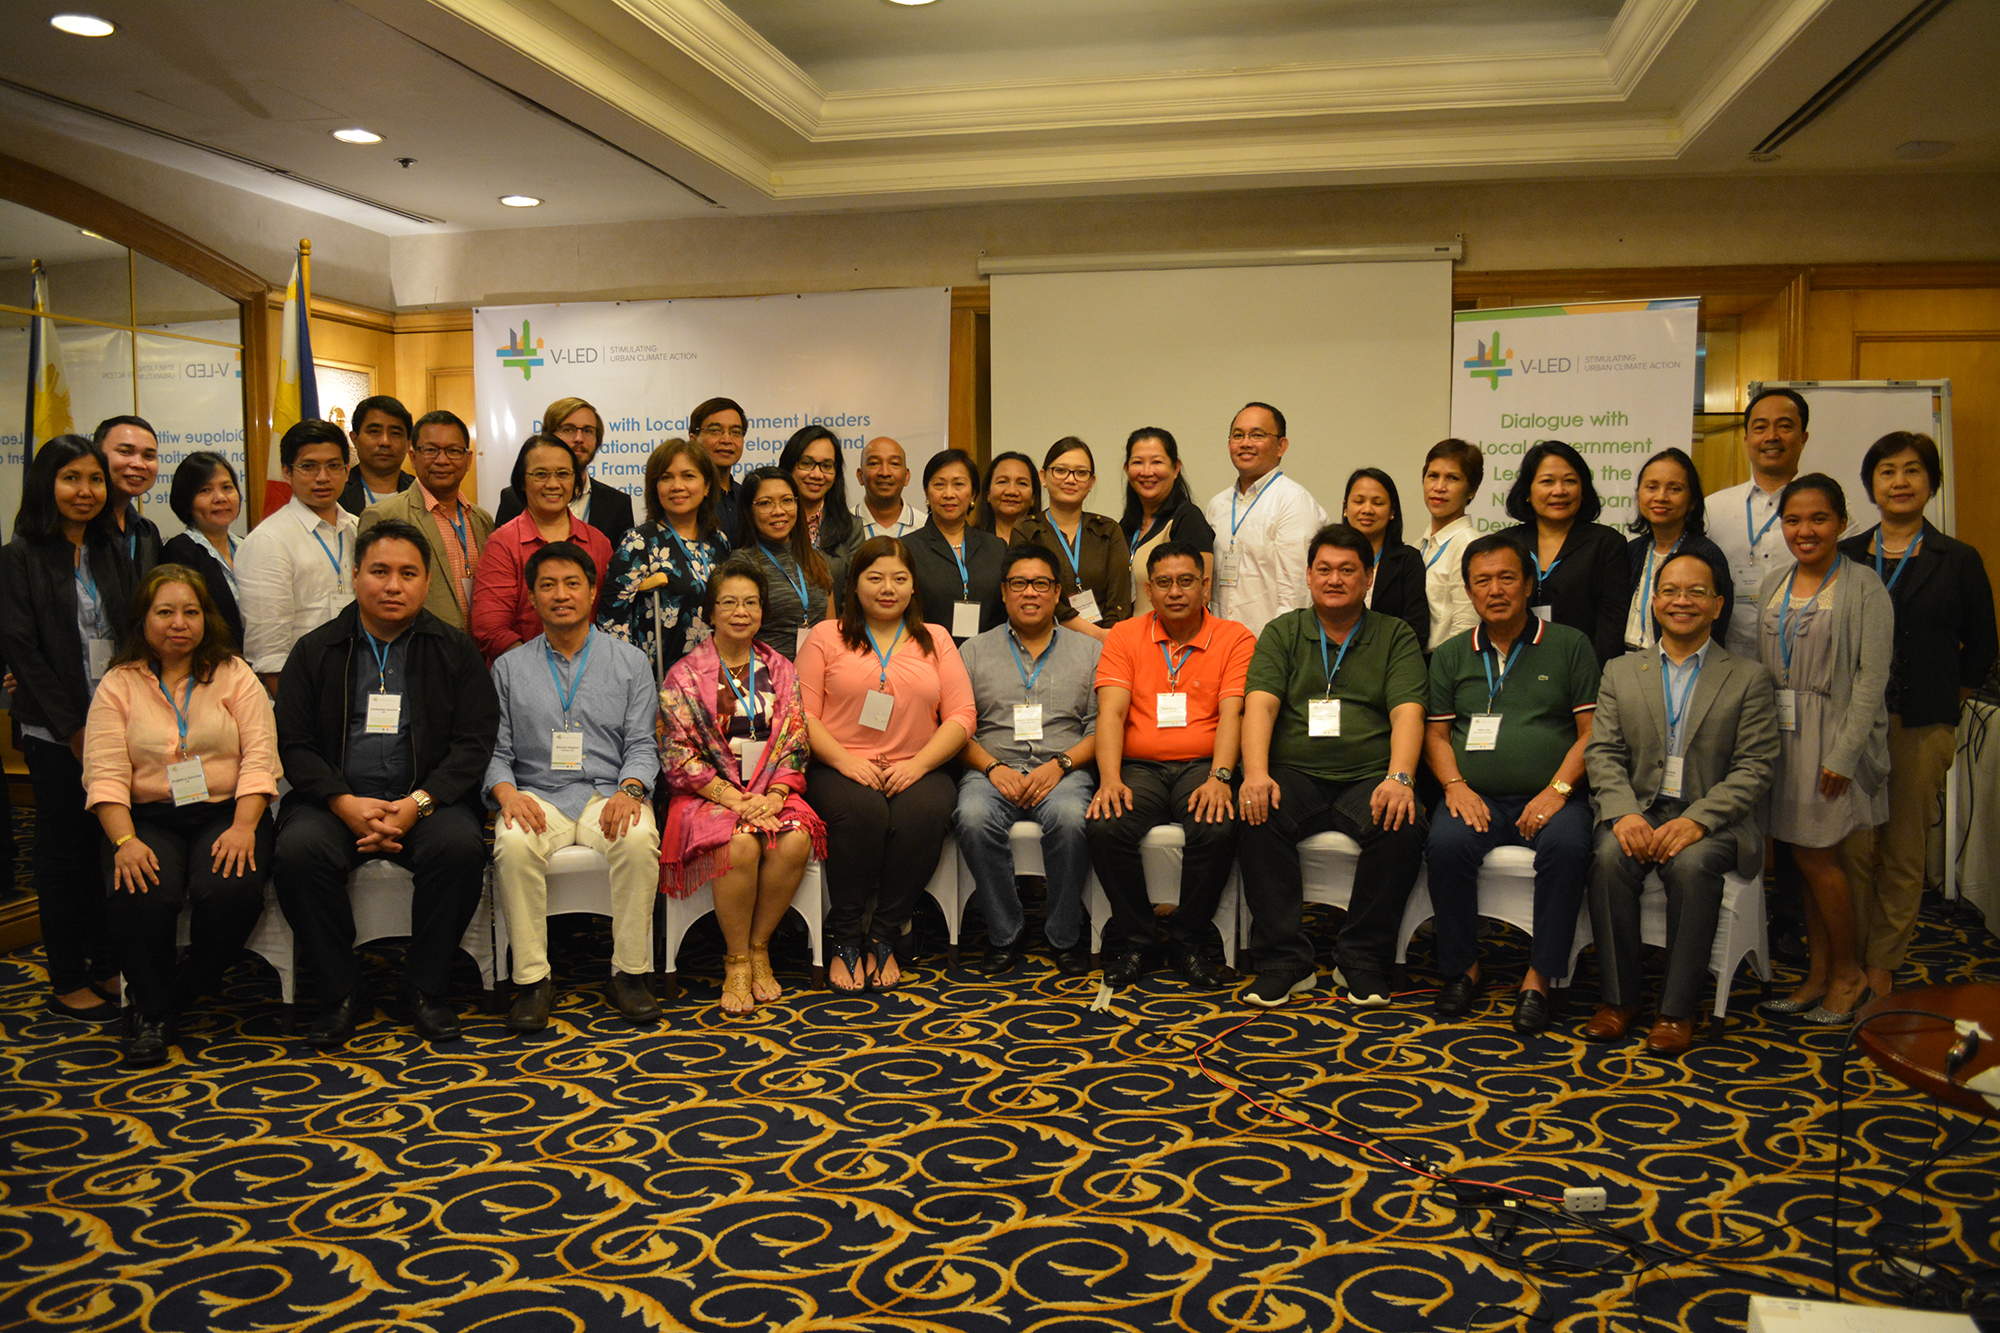 Participants of the dialogue event on the National Urban Development and Housing Framework (NUDHF) in Support of Local Climate Change Actions.